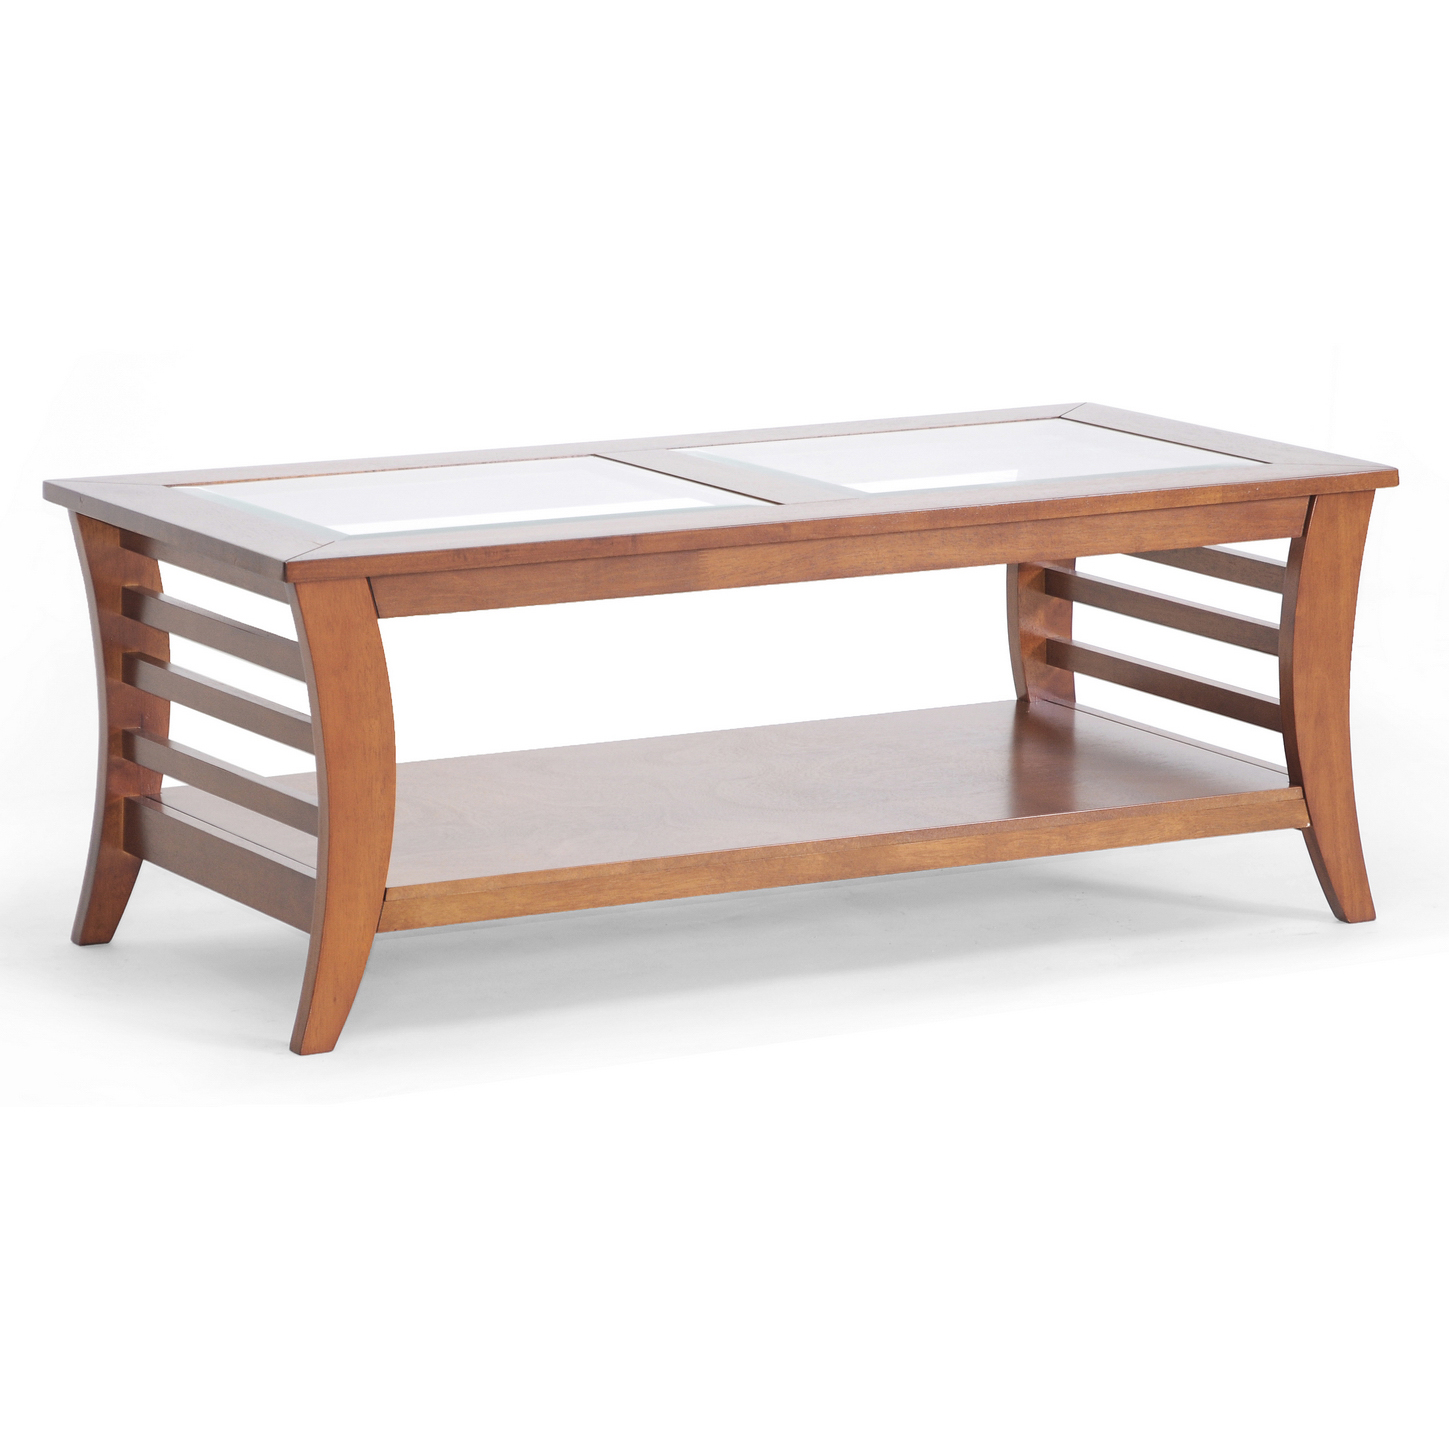 Allison Honey Brown Wood Modern Coffee Table With Glass